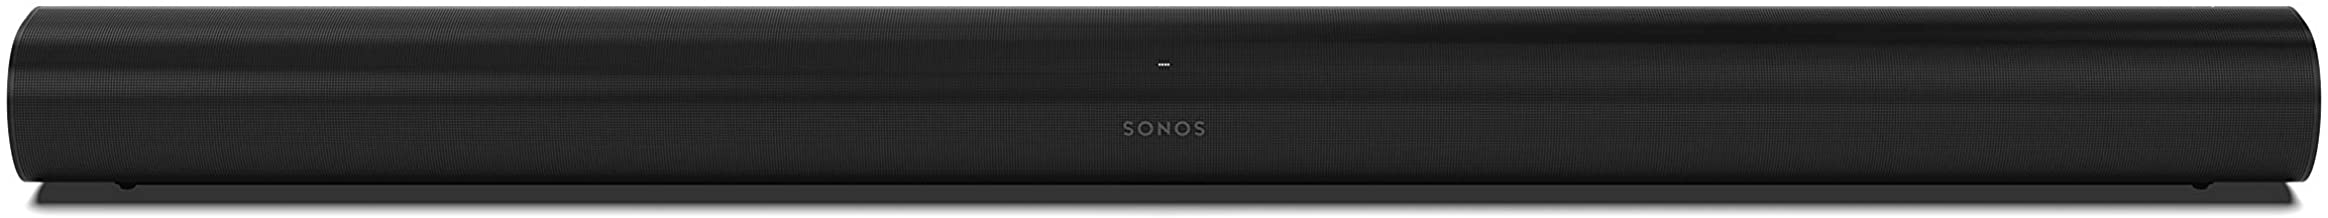 Sonos Arc - The Premium Smart Soundbar for TV, Movies, Music, Gaming, and More - Black